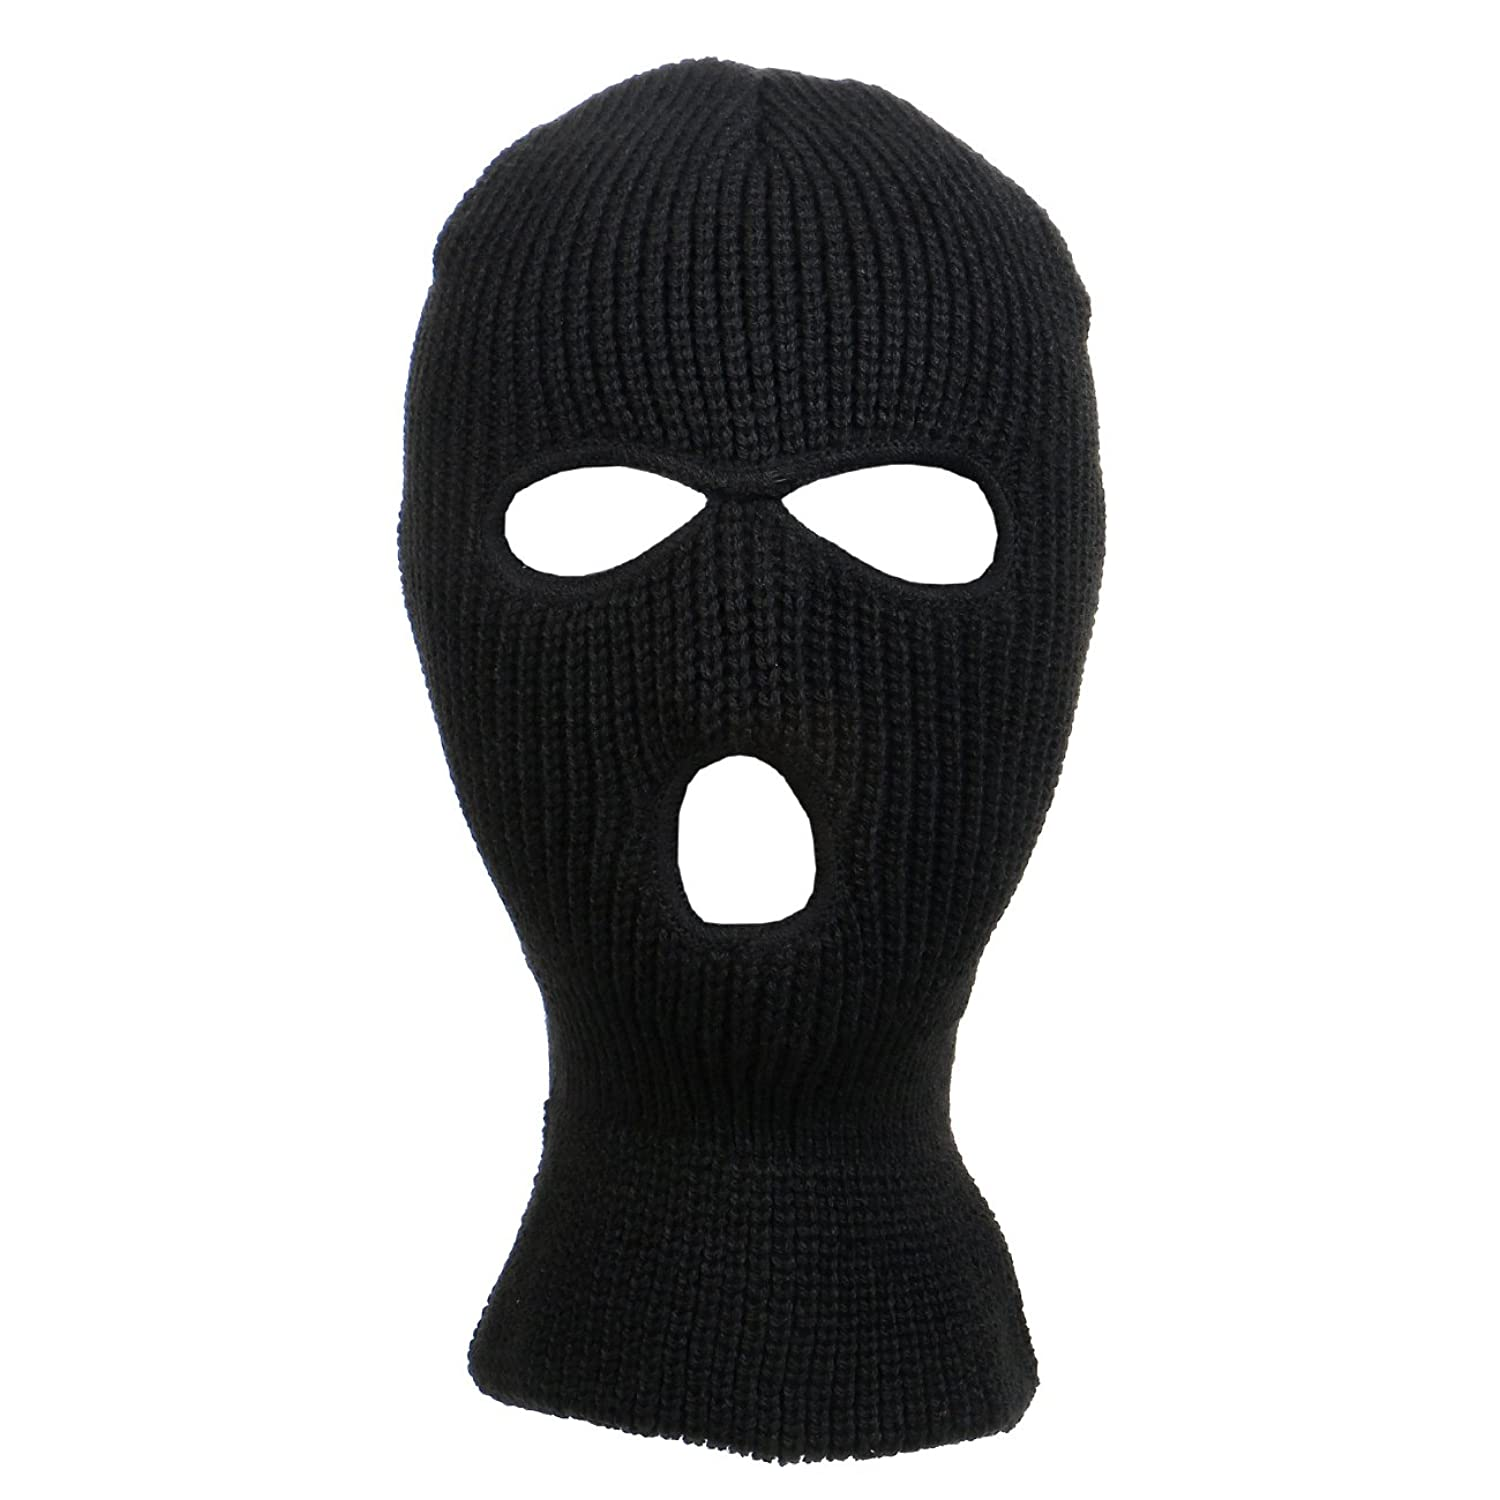 Amazon.com: Knitted 3-Hole Full Face Cover Ski Mask: Clothing